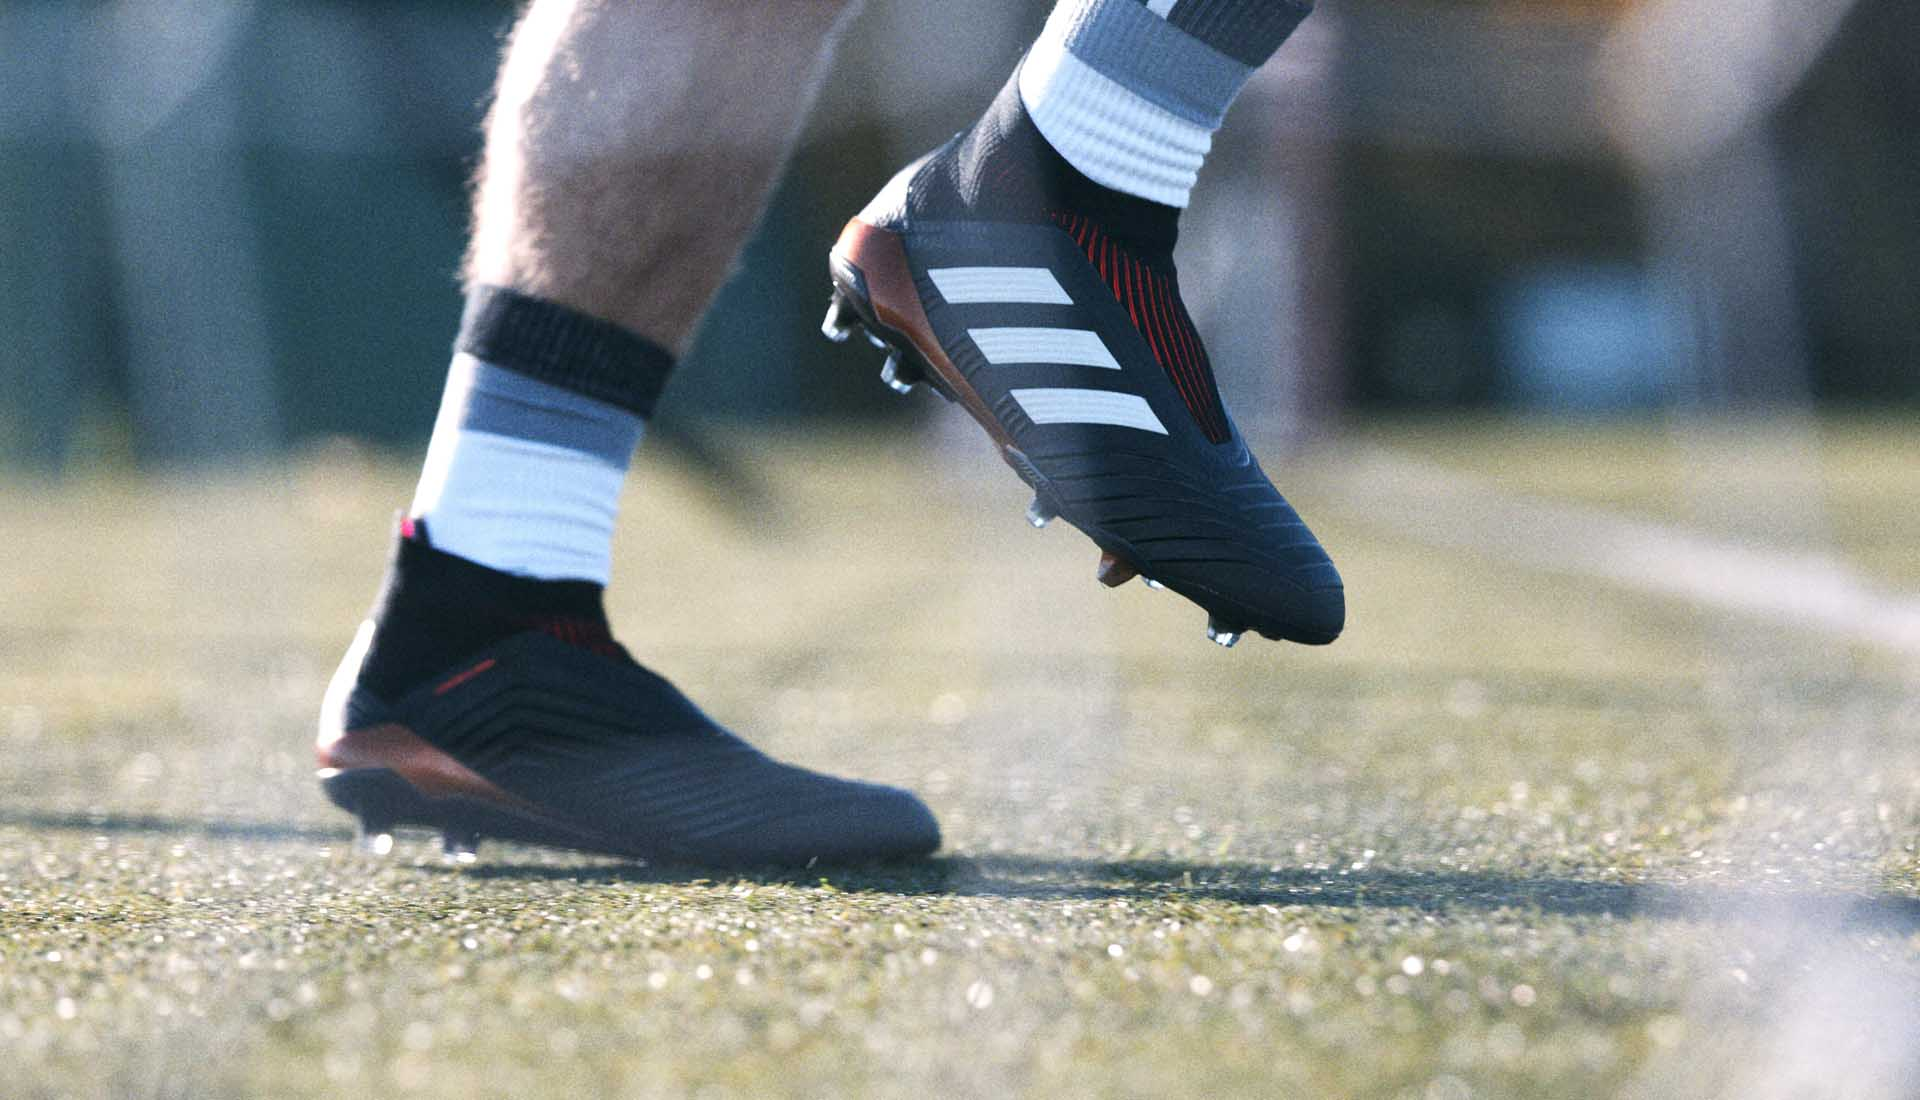 0ddbab764b54 Laced Up  adidas Predator 18+ Football Boots Review - SoccerBible.